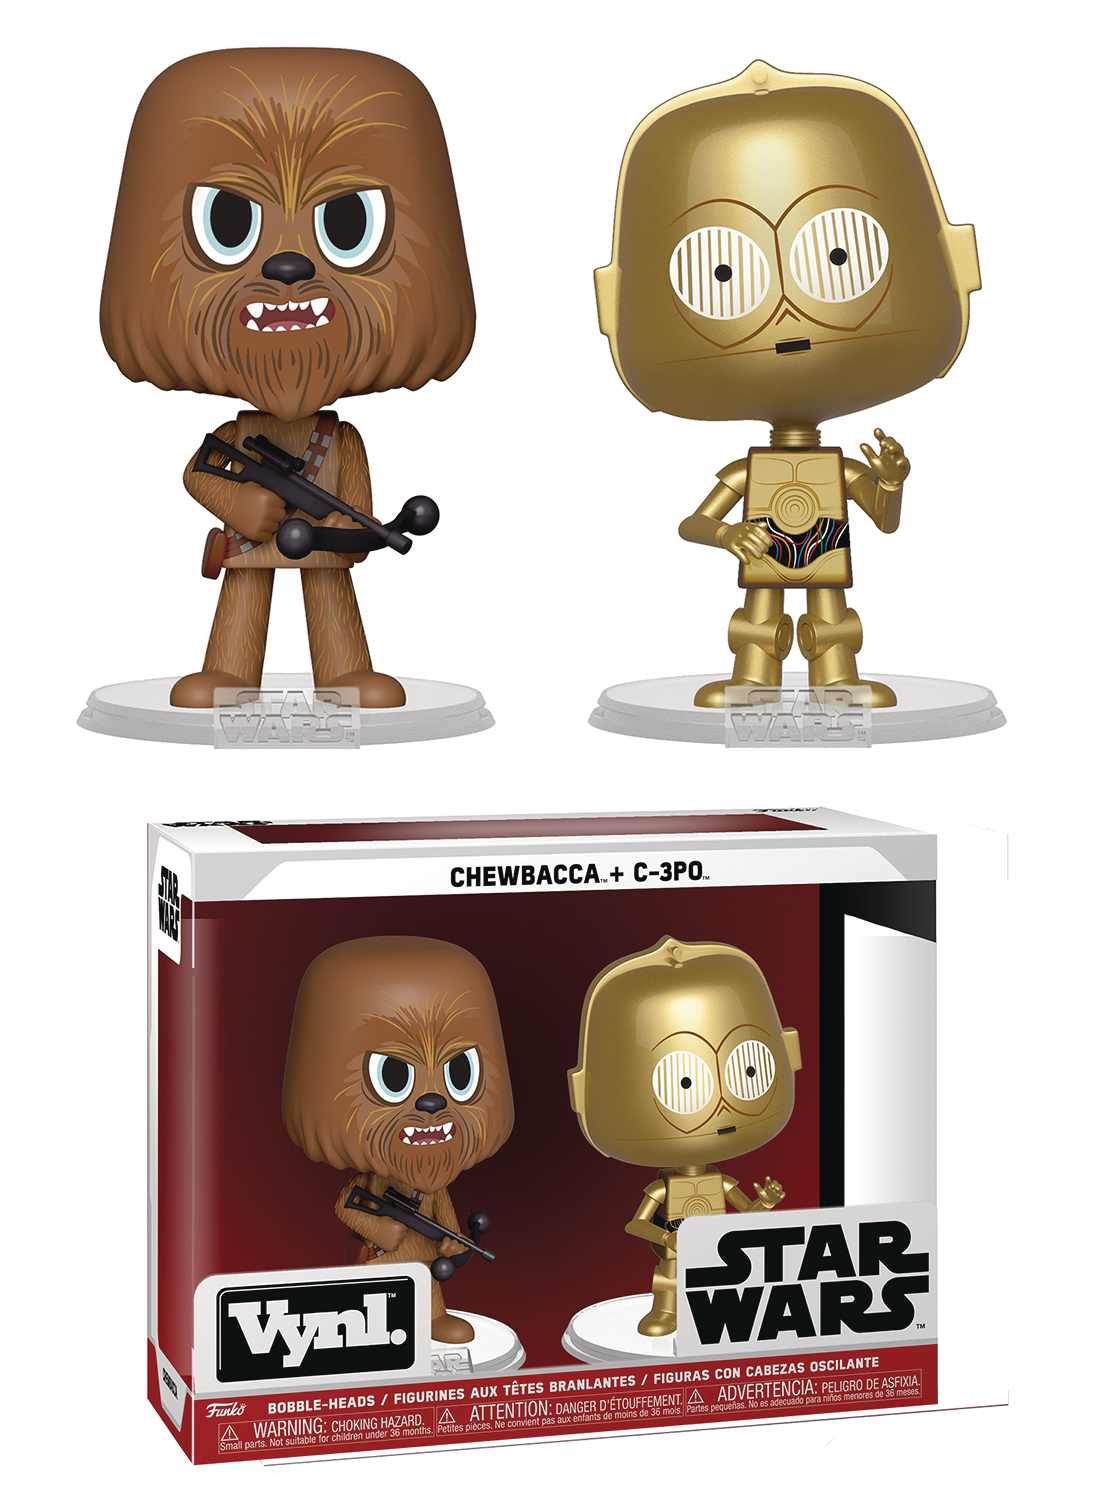 VYNL STAR WARS CHEWBACCA & C-3PO VIN FIG 2PK